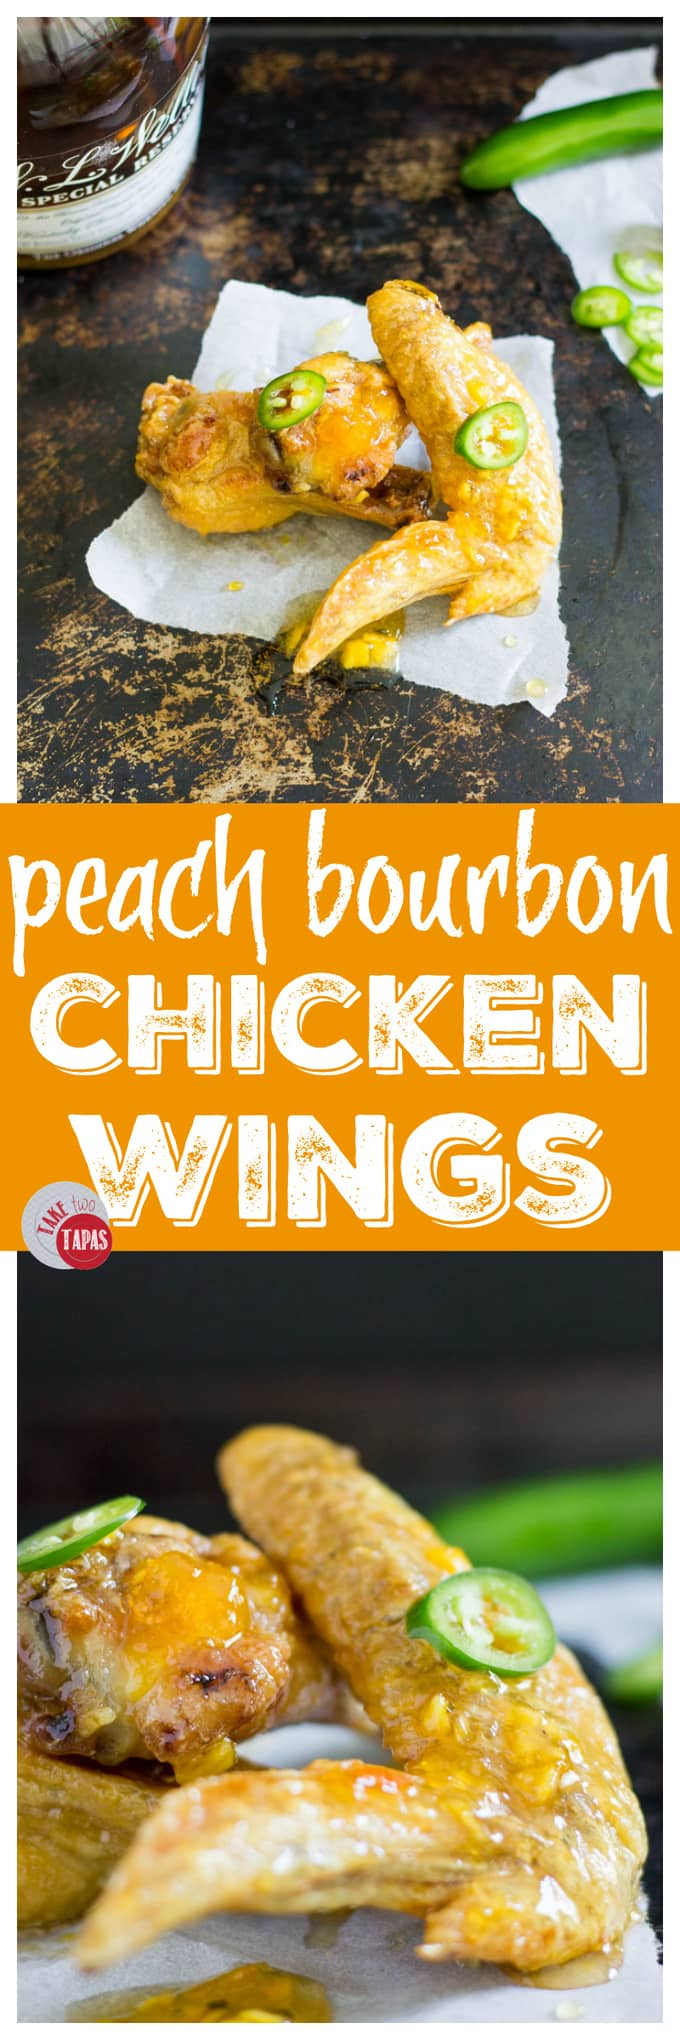 Peach Bourbon Chicken Wings | Take Two Tapas | #Peach #Bourbon #ChickenWings #ChickenWingFlavors #ChickenWingSauces #Spicy